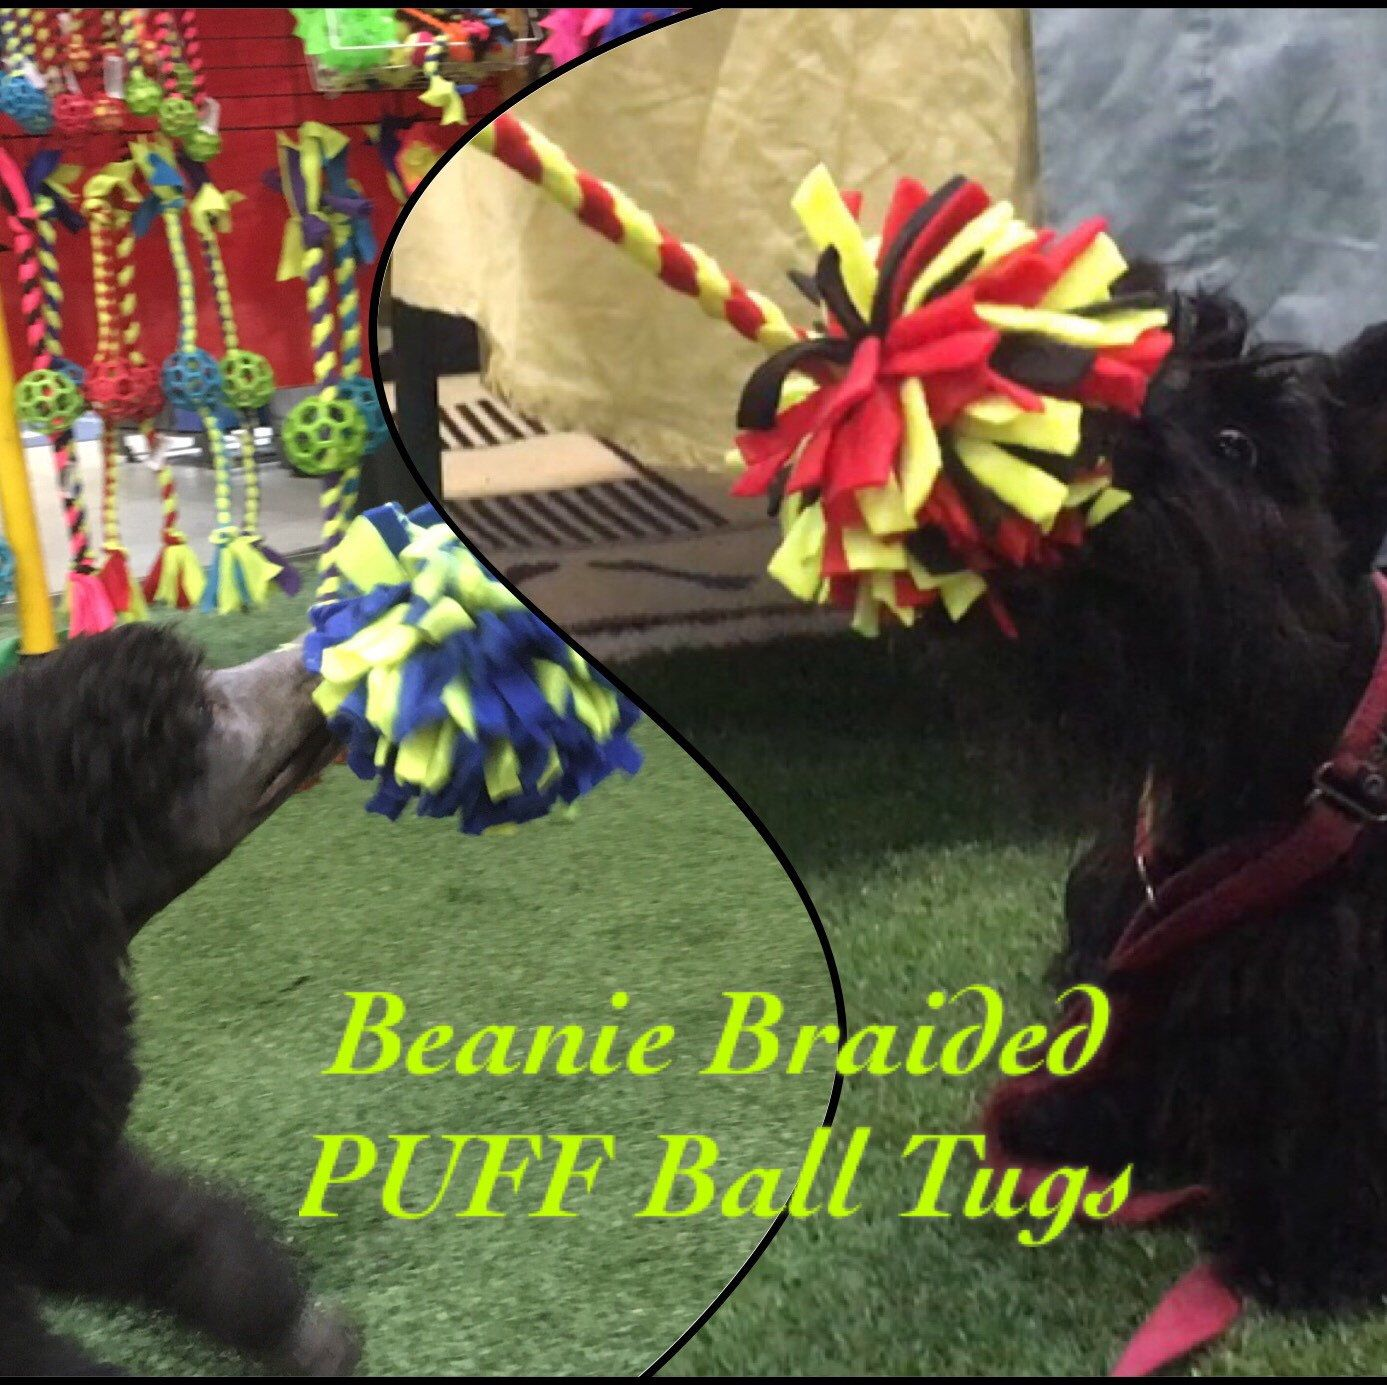 """New"" .....Beanie Braided PUFF Ball Tugs are now available in our Etsy Shop! PUFF Balls are soft on dogs mouth, fringe increases dogs excitement to encourage lots of tugging & chasing fun...perfect for puppies and dogs of all sizes!!"